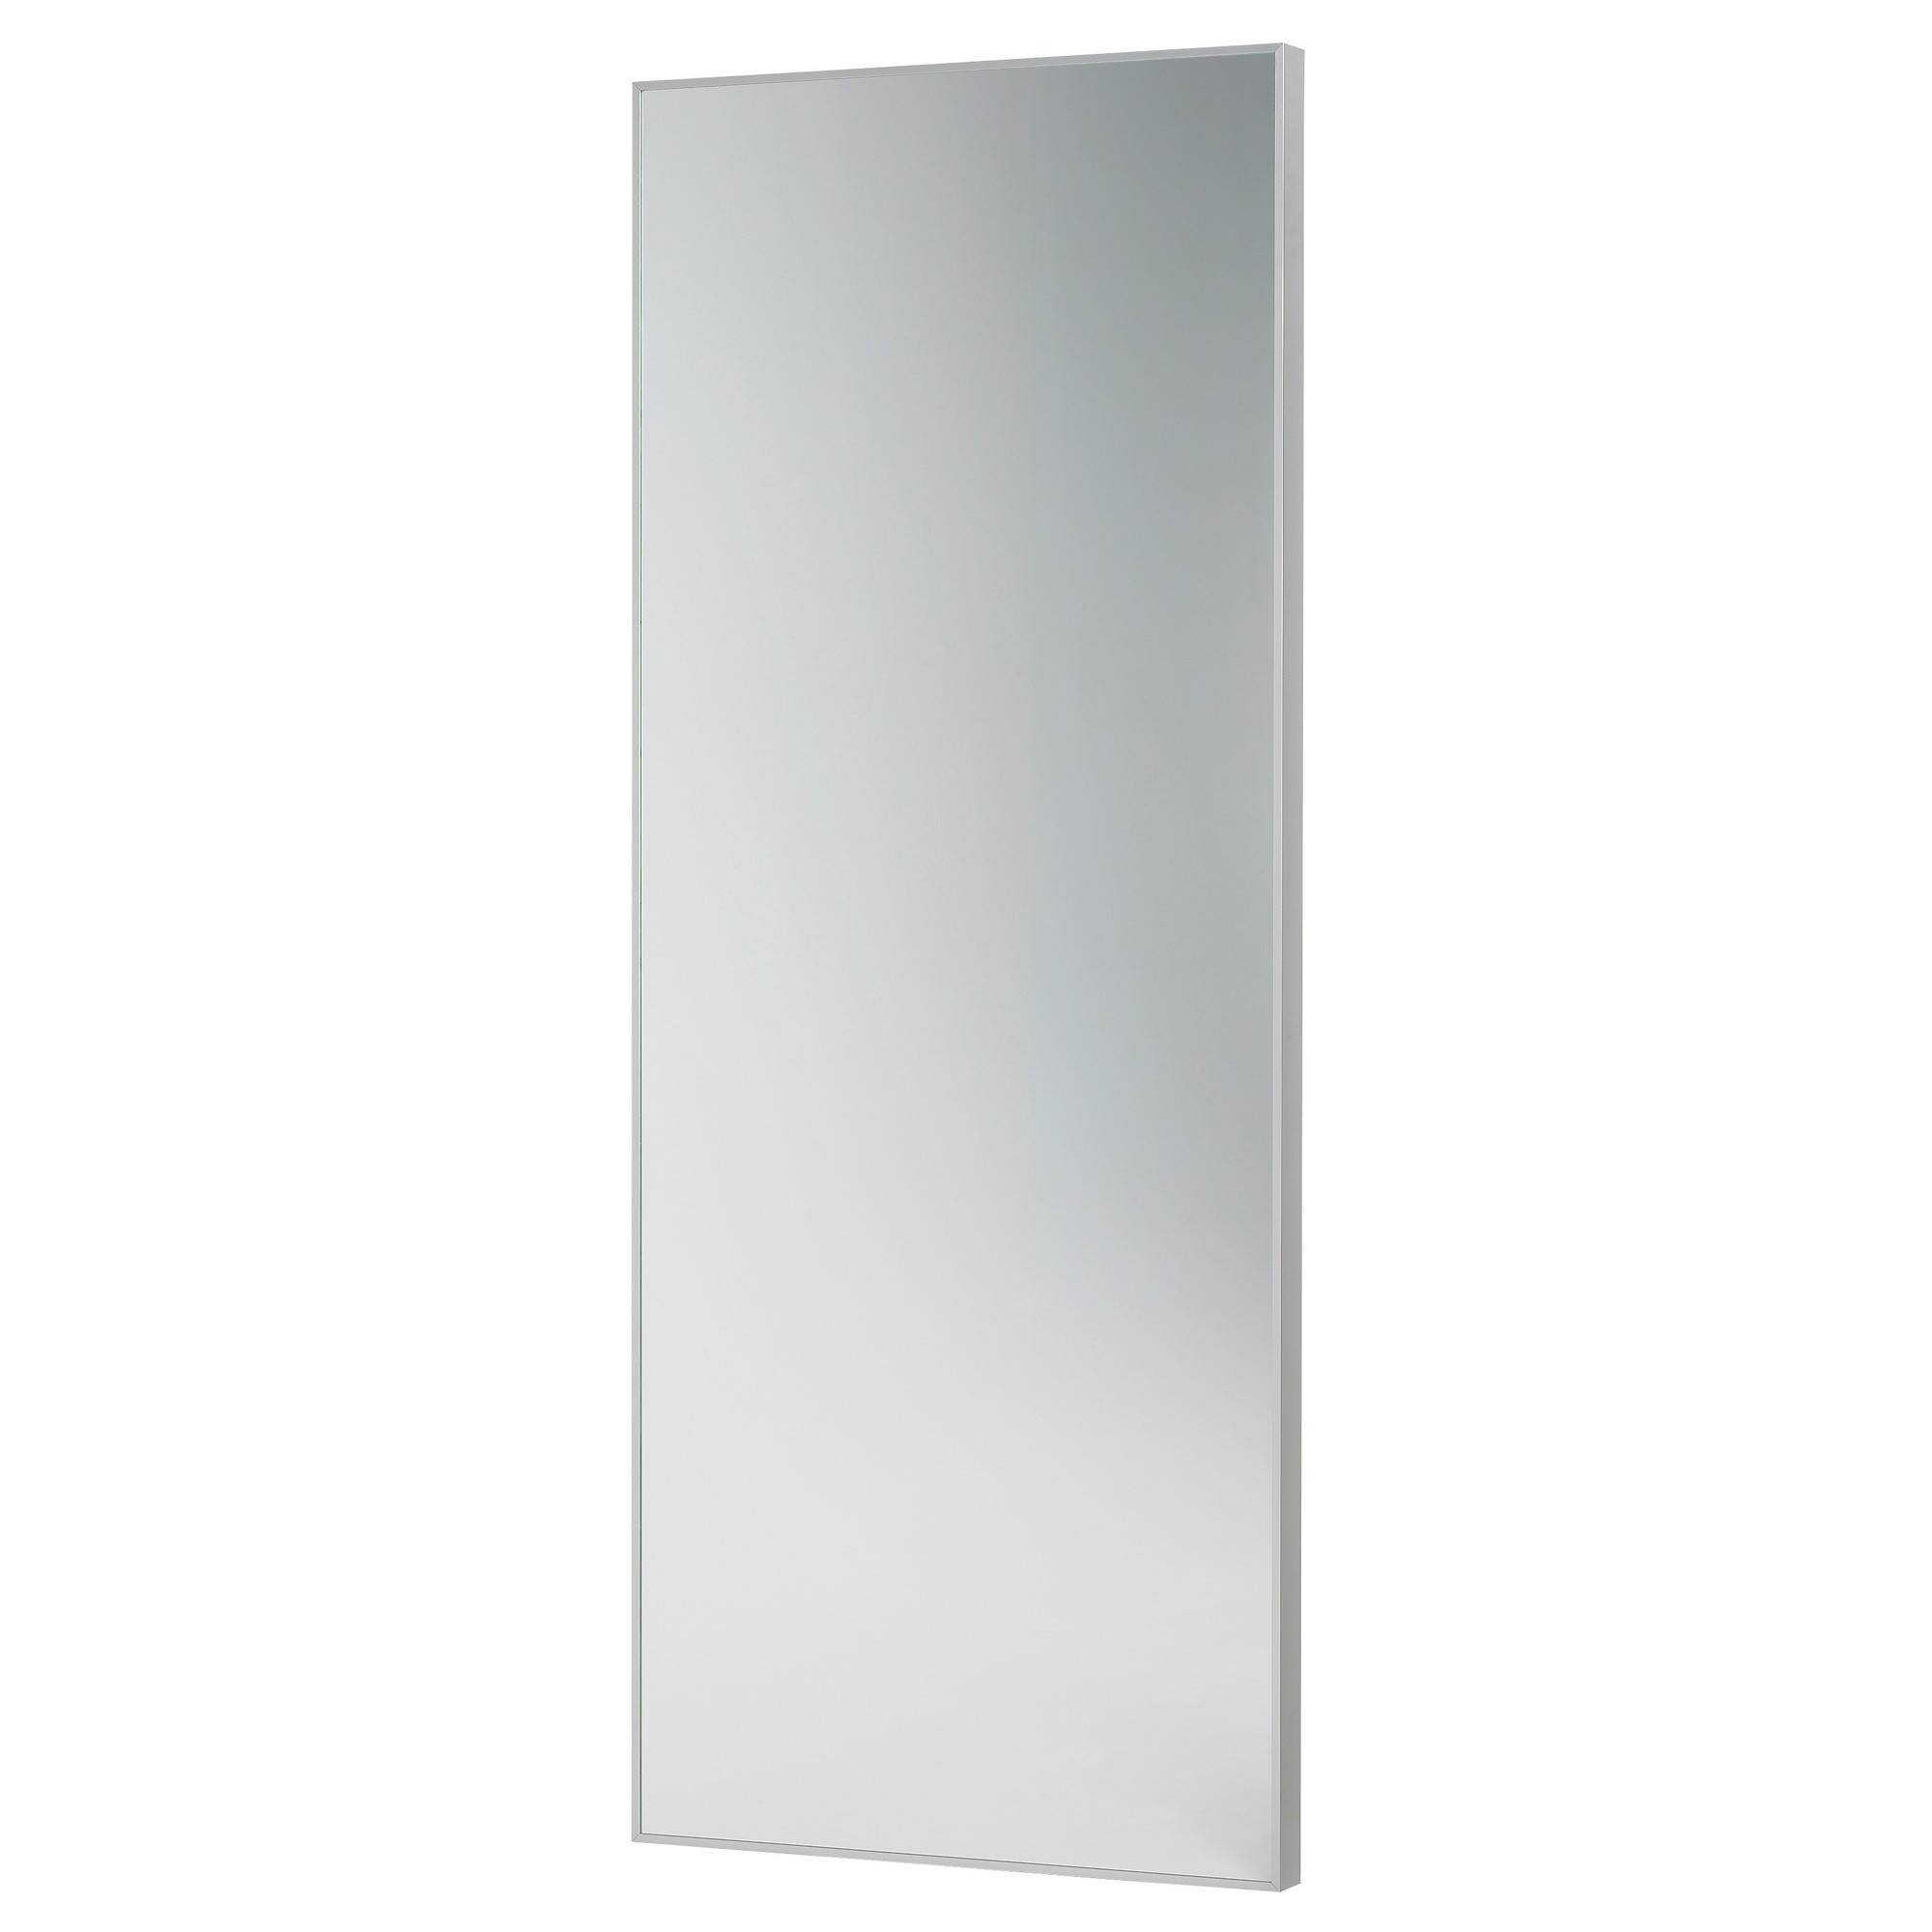 Full Length Mirrors – Ikea For Silver Floor Standing Mirrors (View 12 of 25)